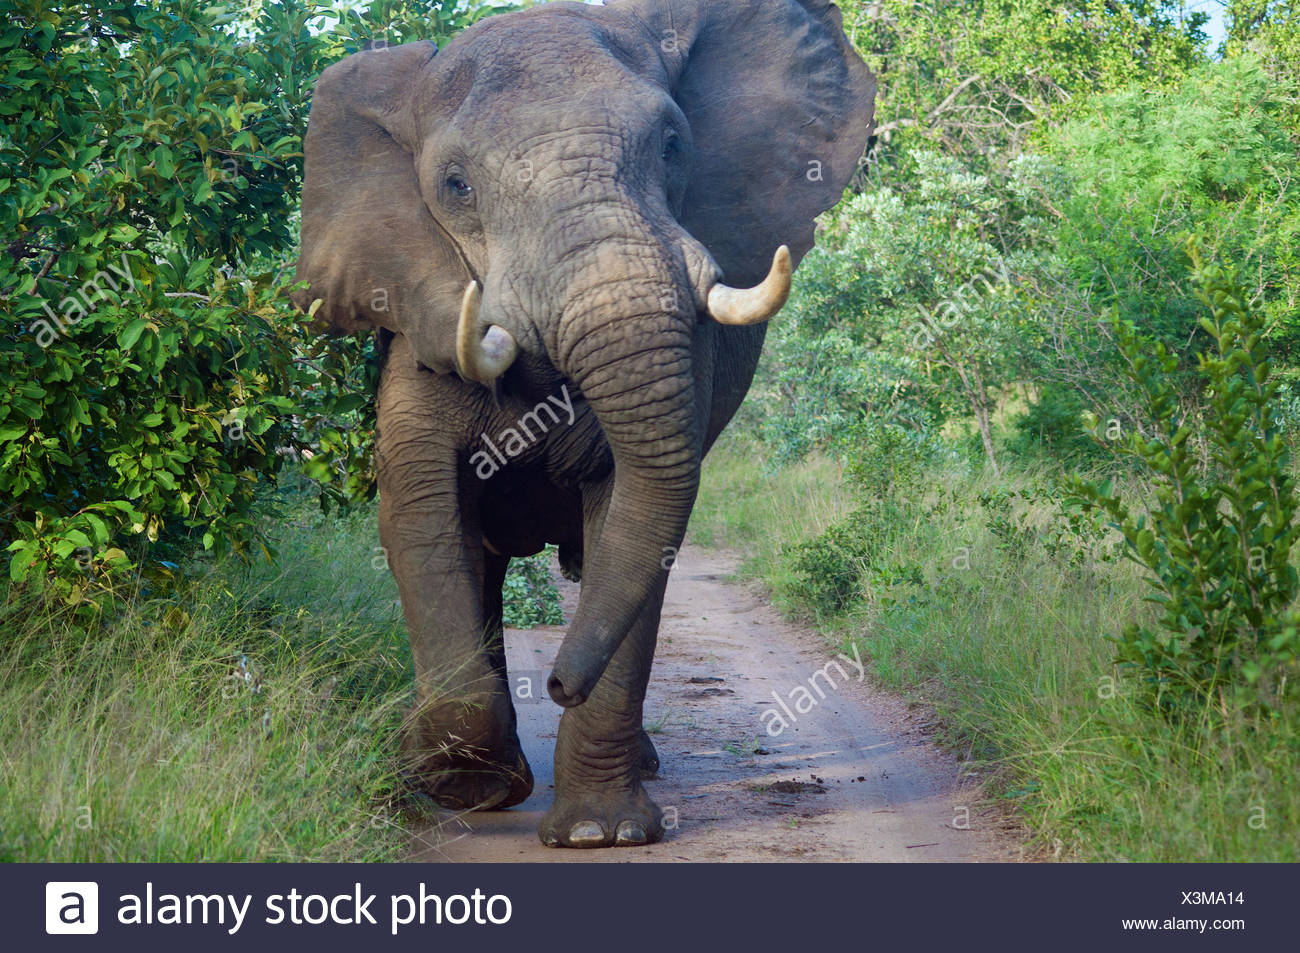 Elephant bull standing on road, Limpopo, South Africa Stock Photo